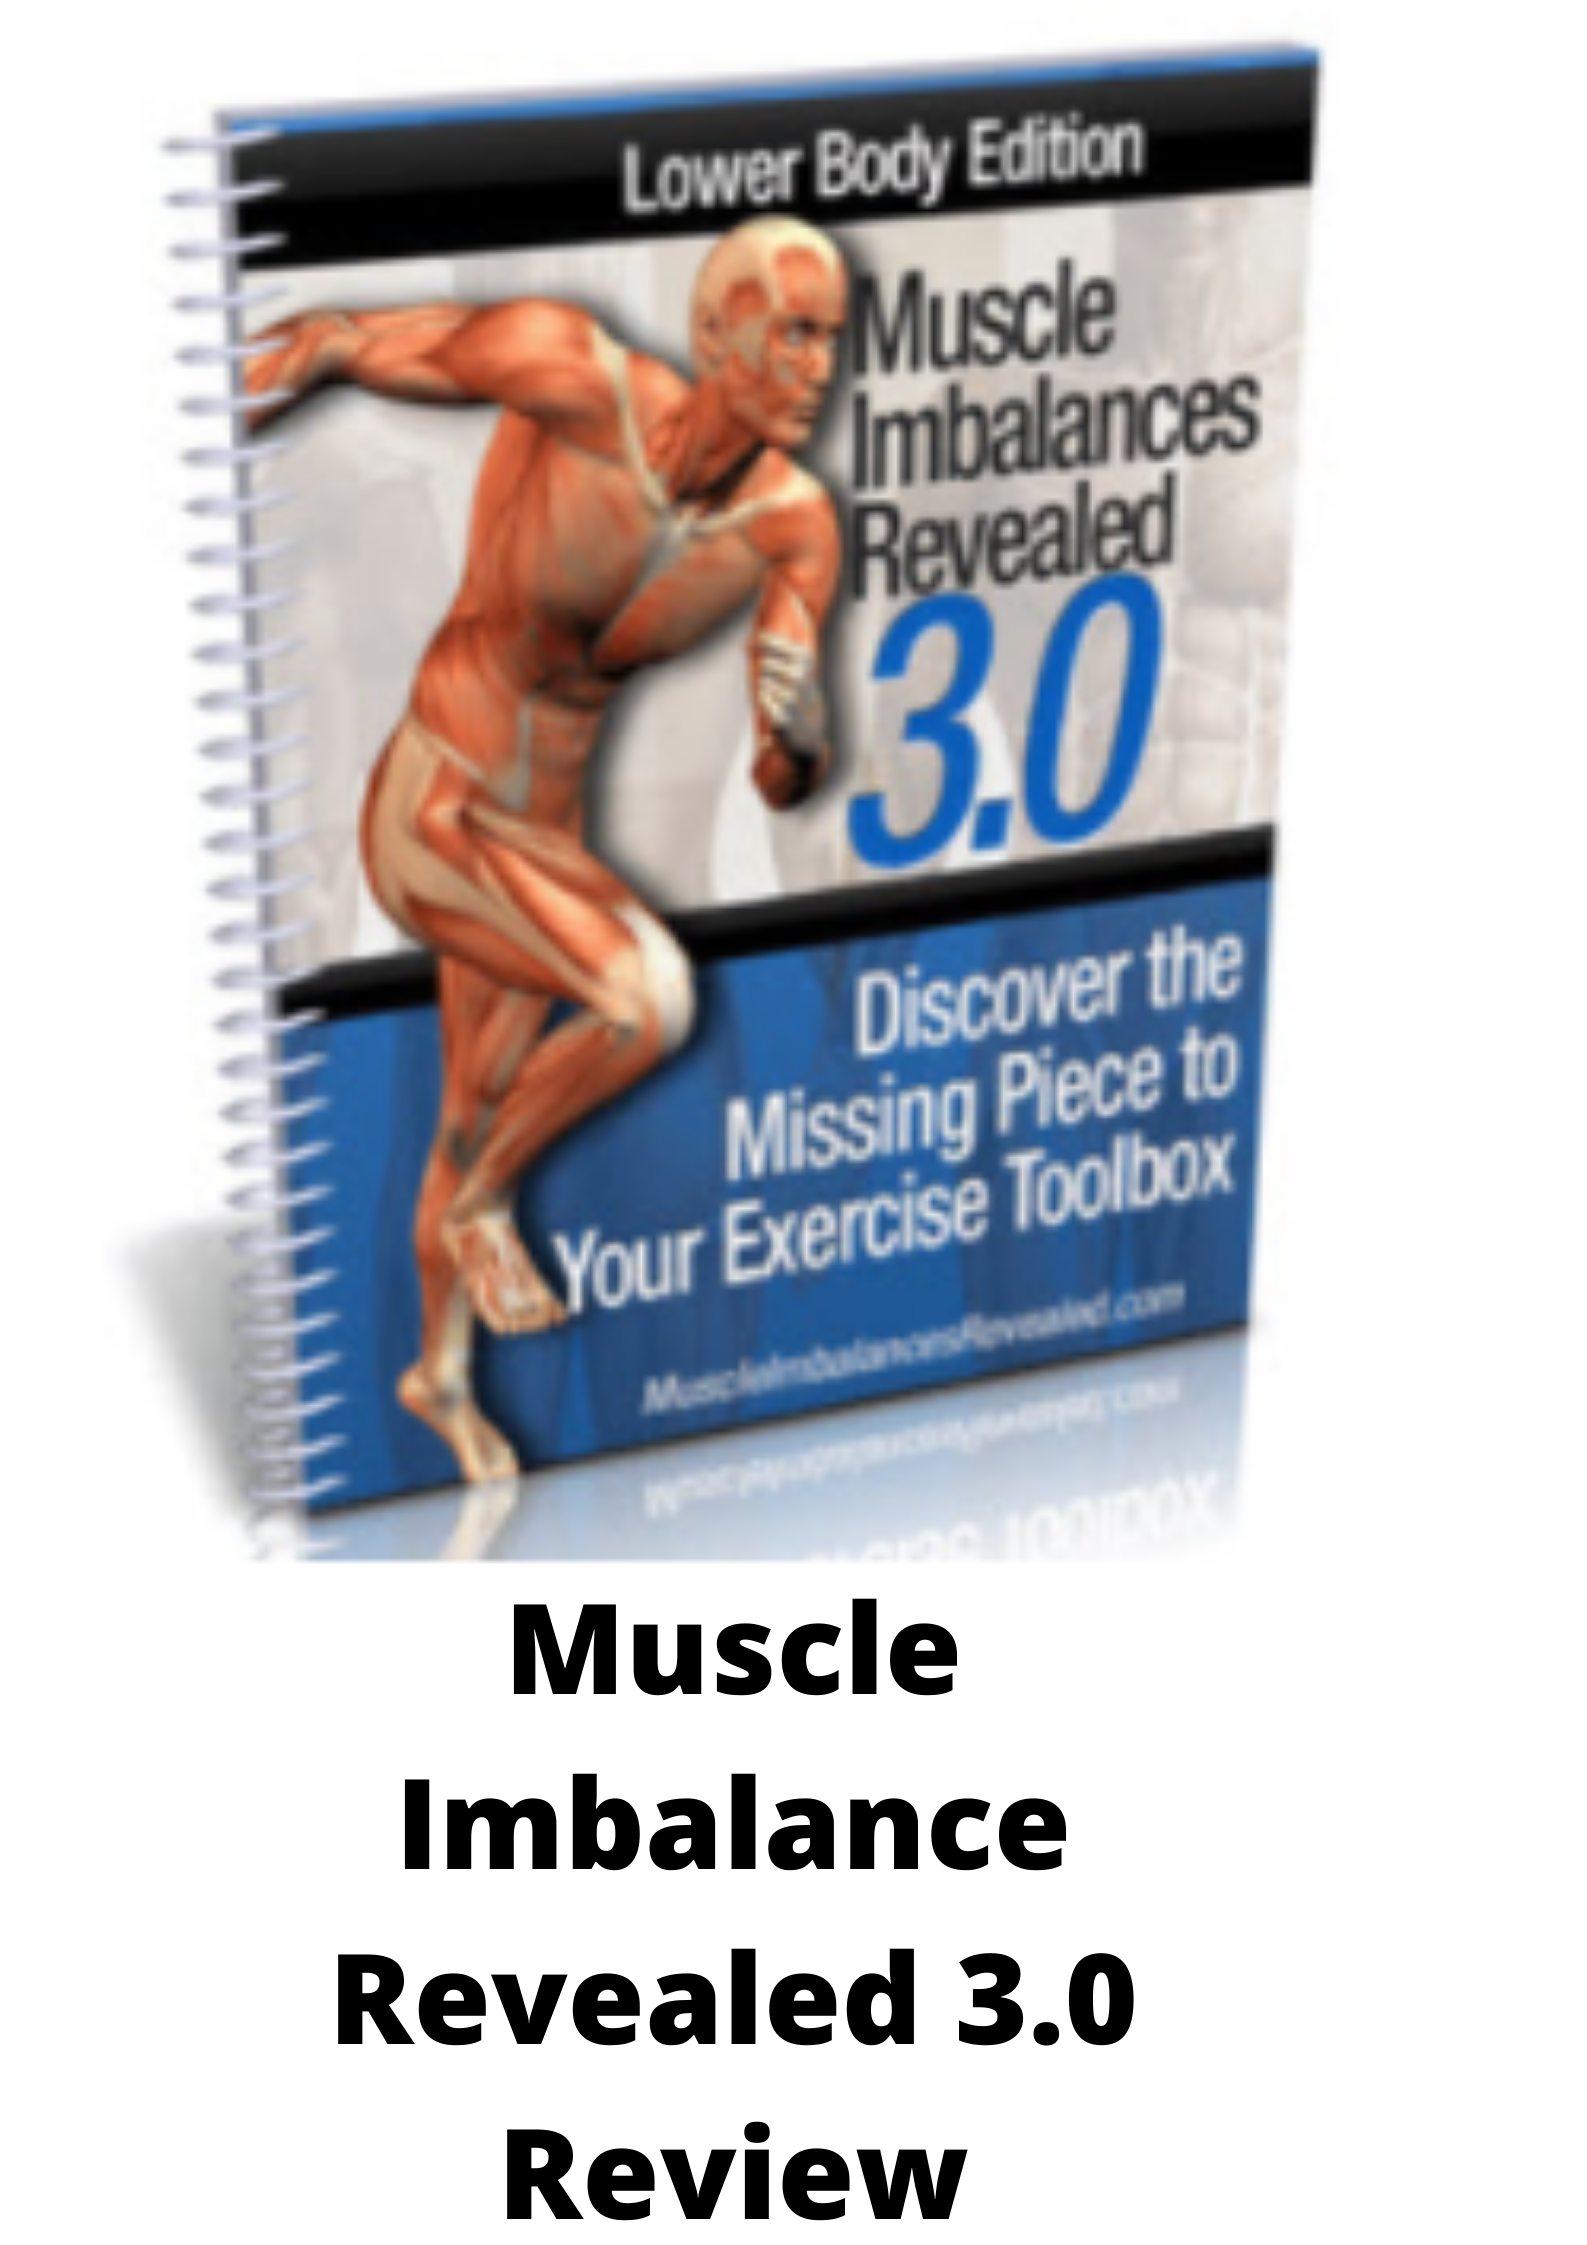 Muscle Imbalances Revealed Review-Is this a scam?